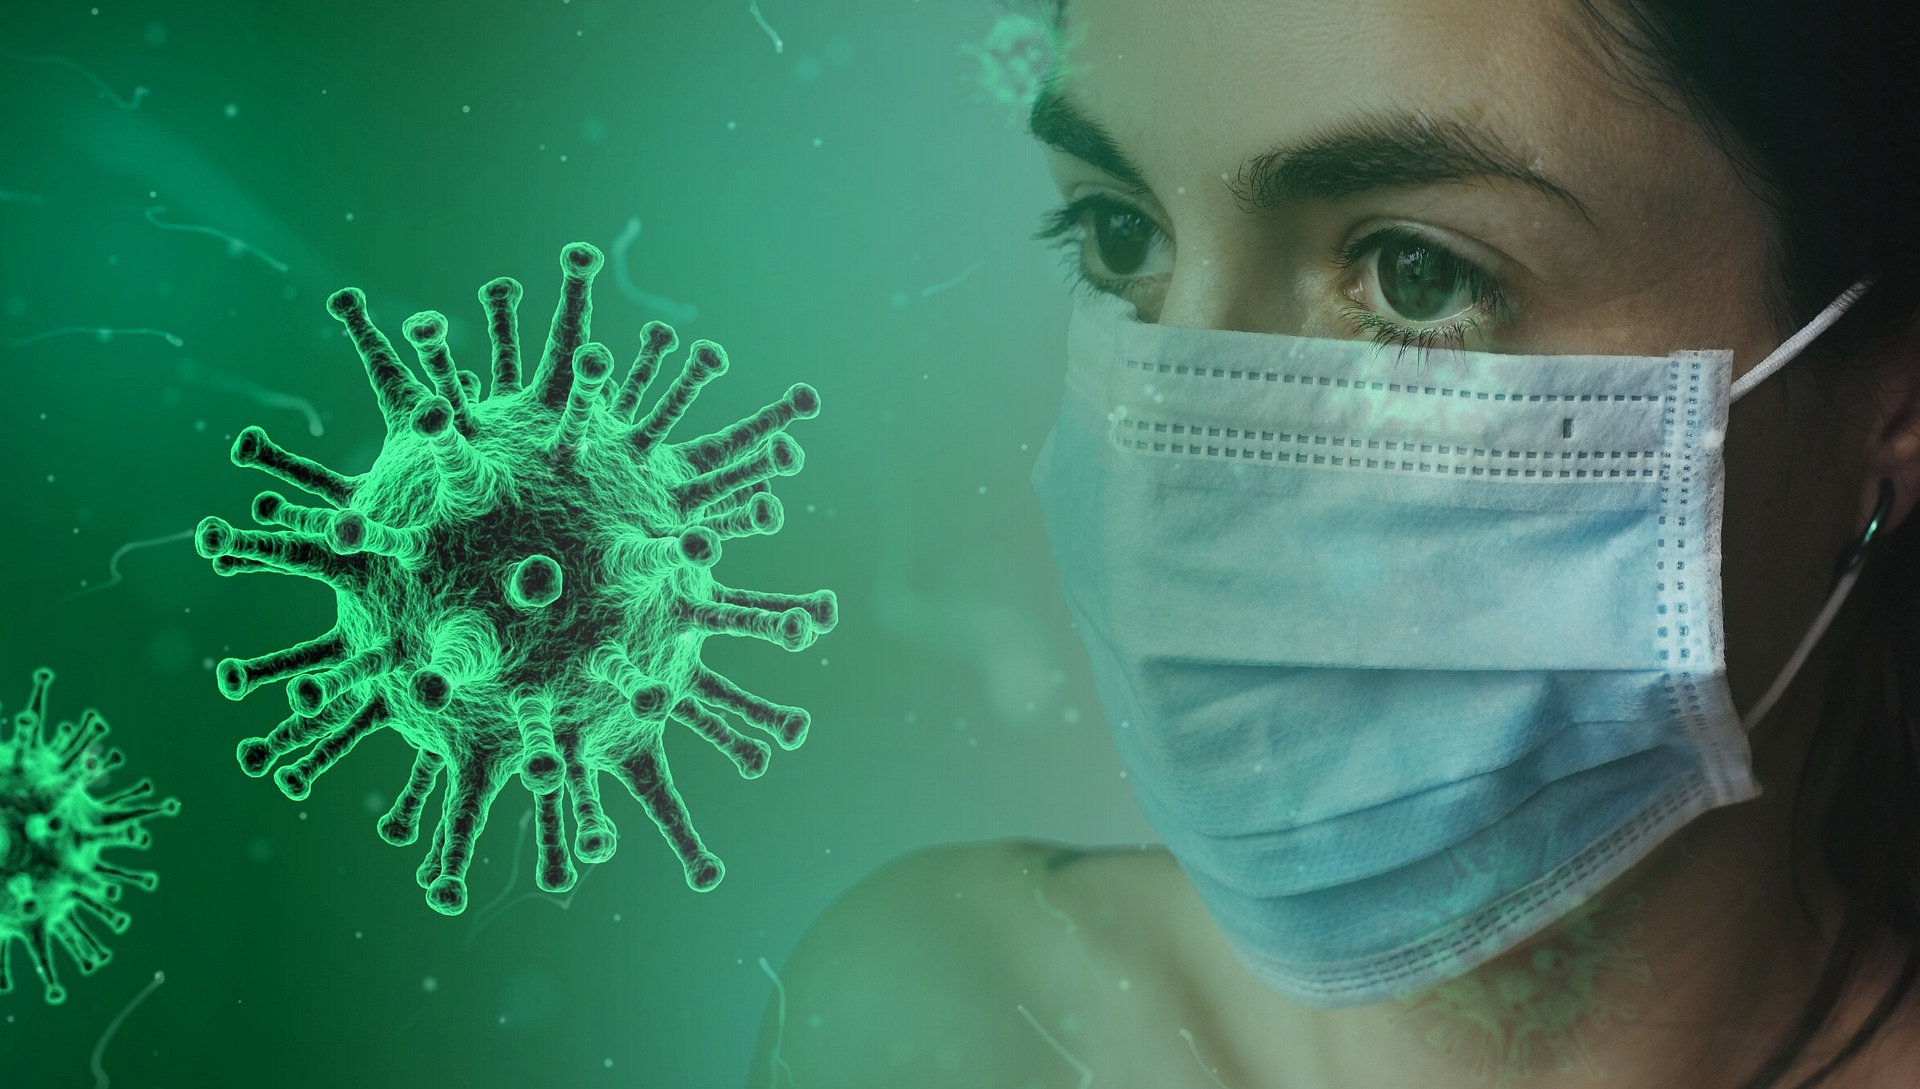 No Alarm As Eli Lilly And Co (NYSE:LLY) Suspends Coronavirus Treatment Trials